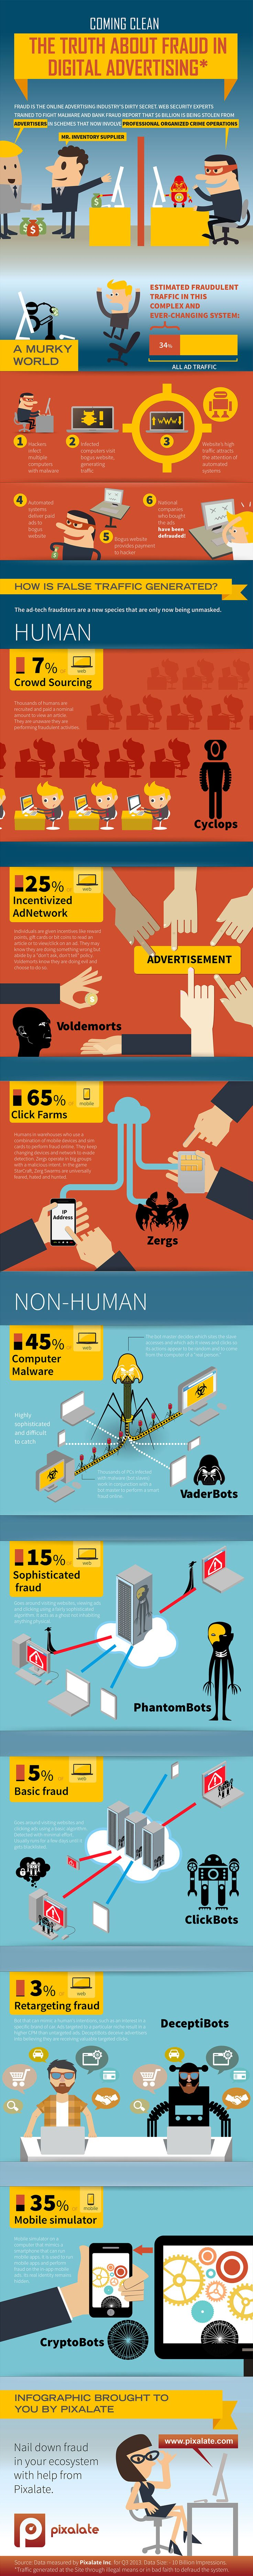 The Truth About Fraud In Digital Advertising #Infographic #Advertising #DigitalAdvertising